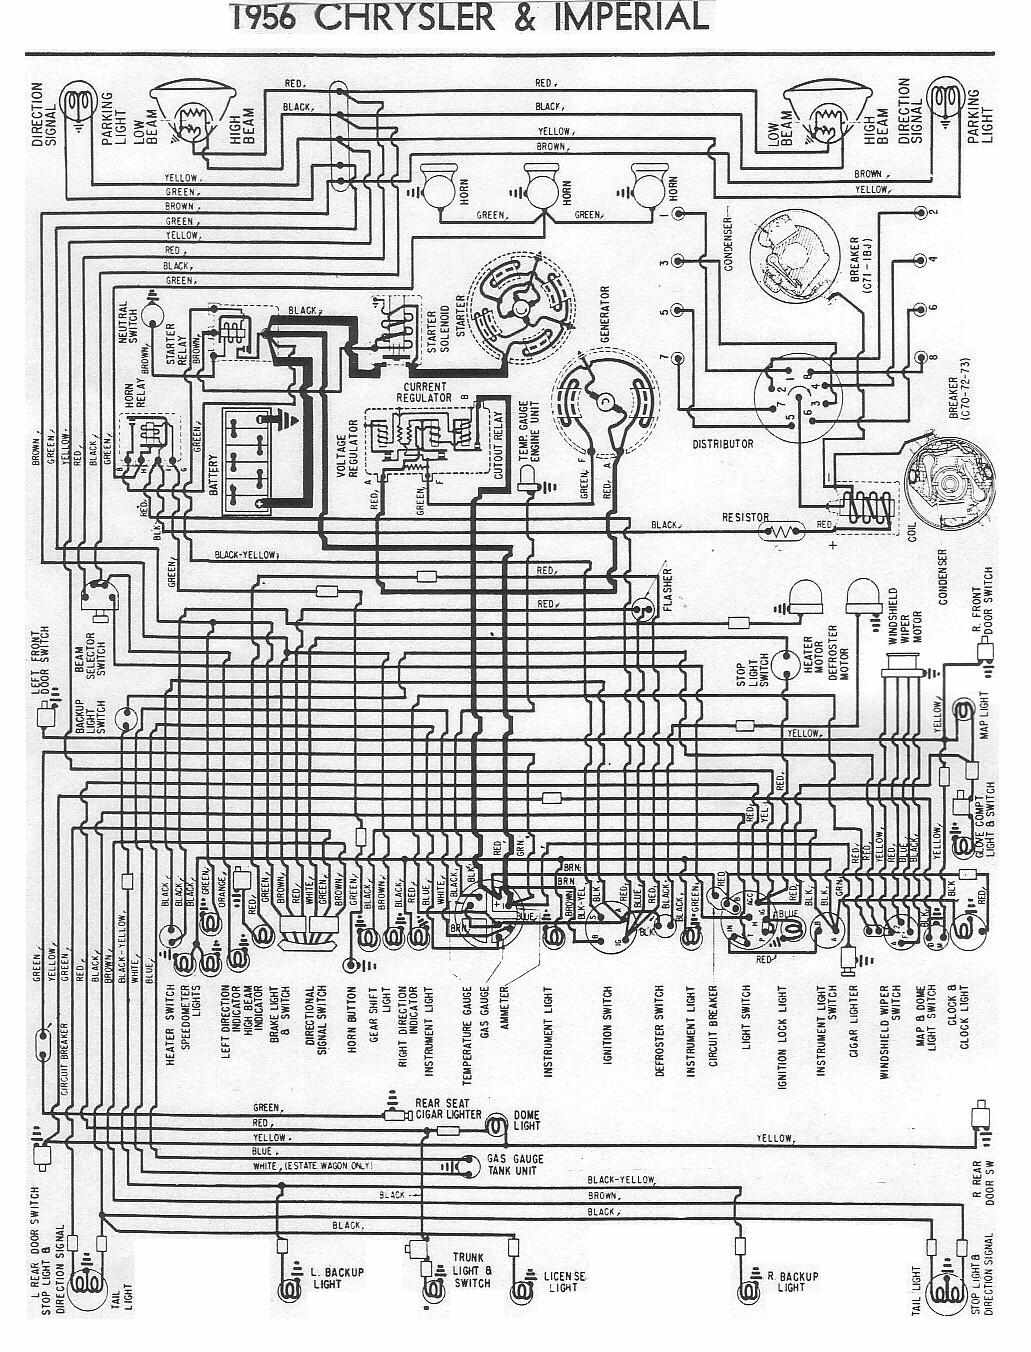 hight resolution of 1967 ford f100 wiring harness electrical wiring diagrams of 1956 chrysler and imperial